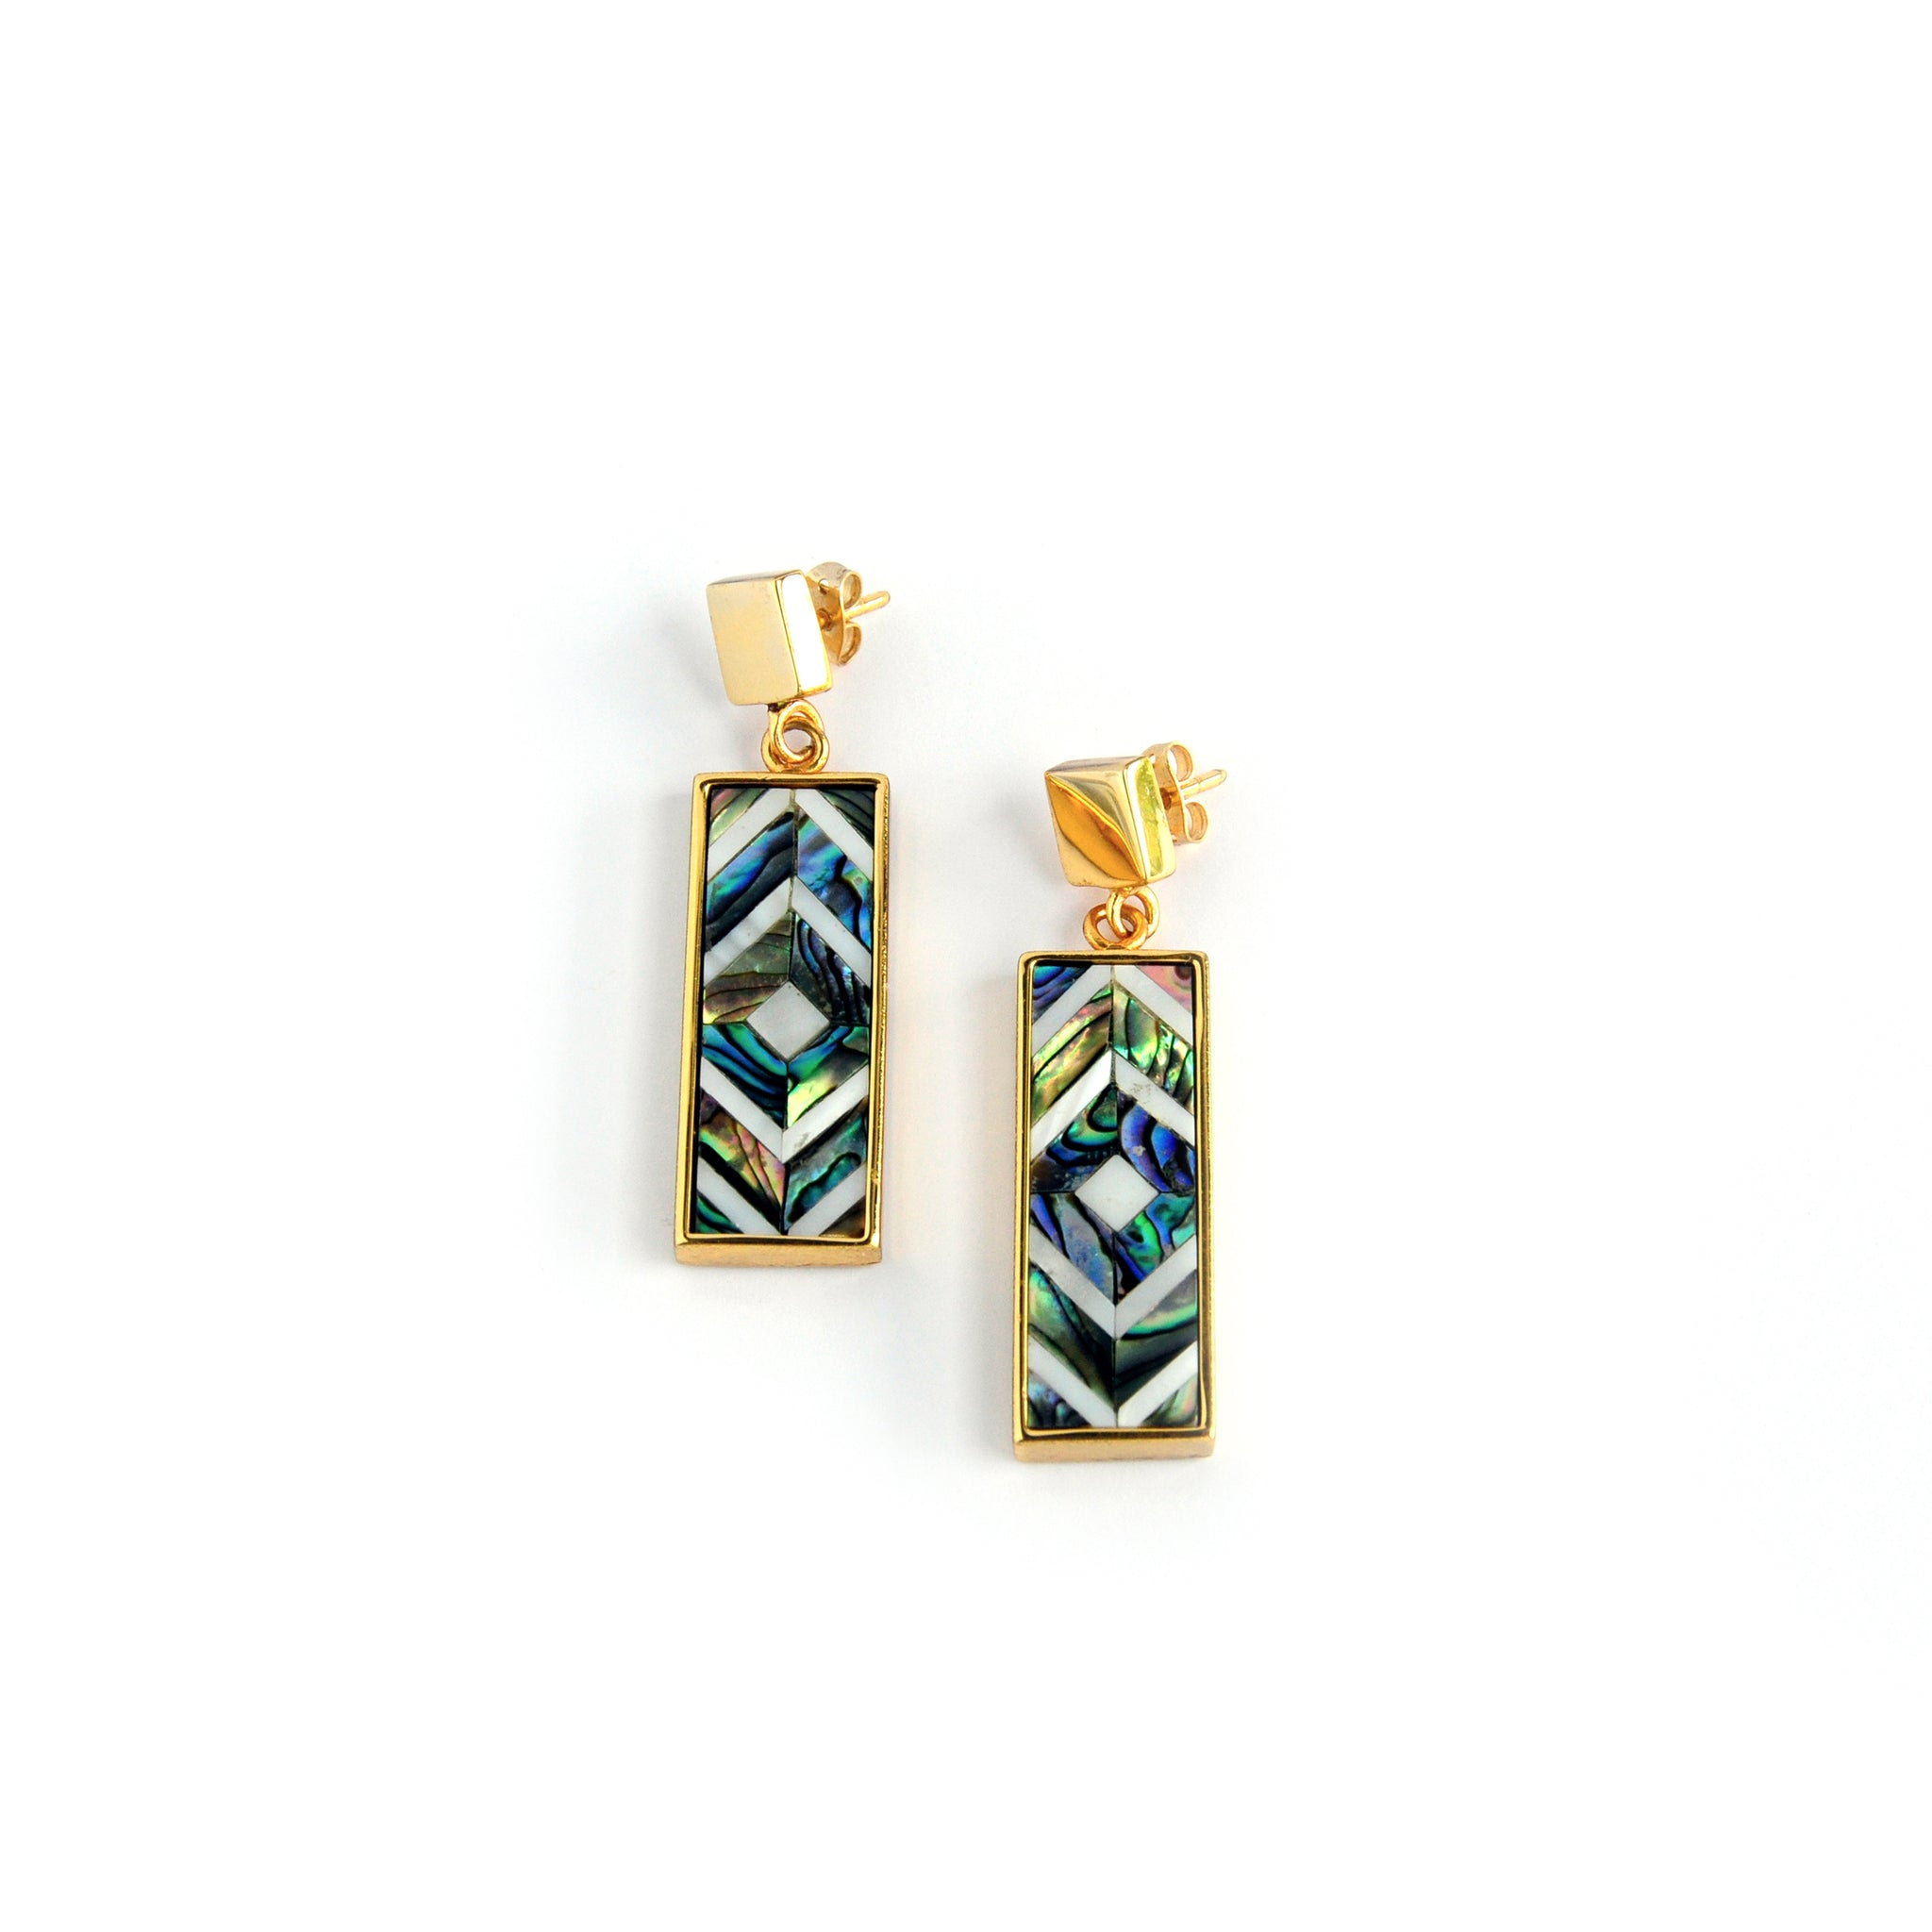 Sofia Mini Earrings - Diamond - Susanne Verallo